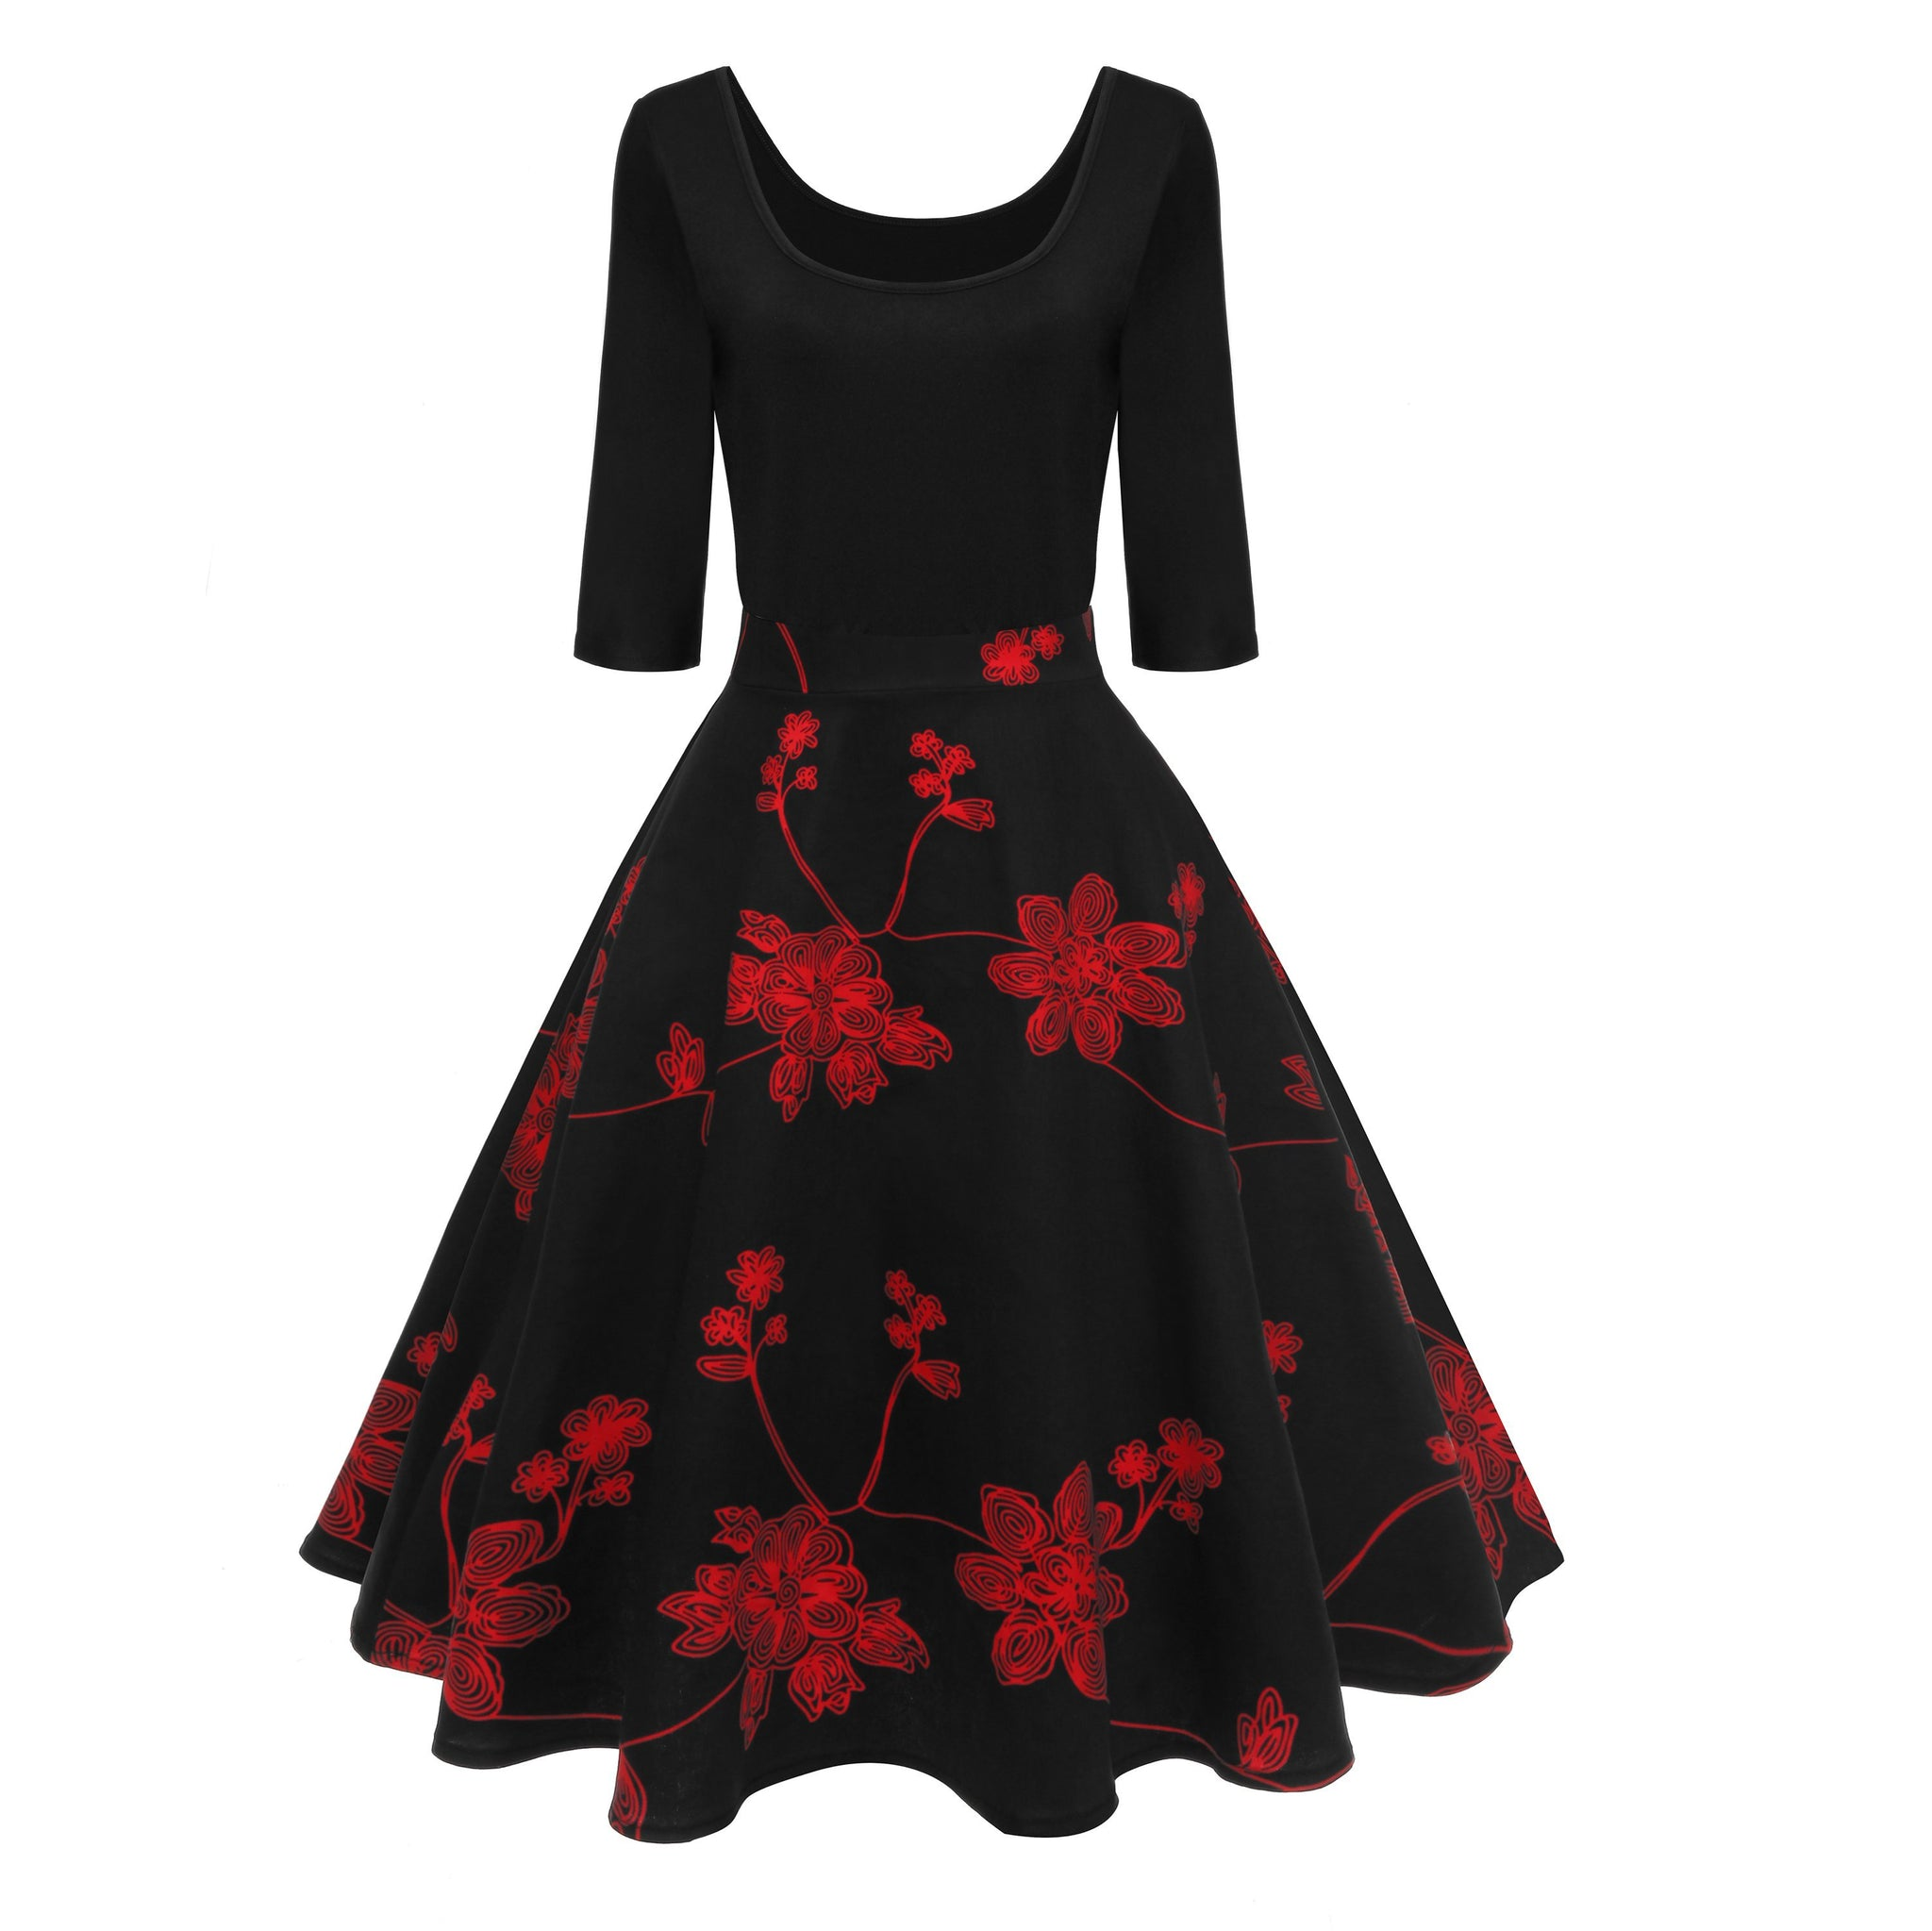 Women's 50s Vintage Floral U-Neck Midi Dress Long Sleeve